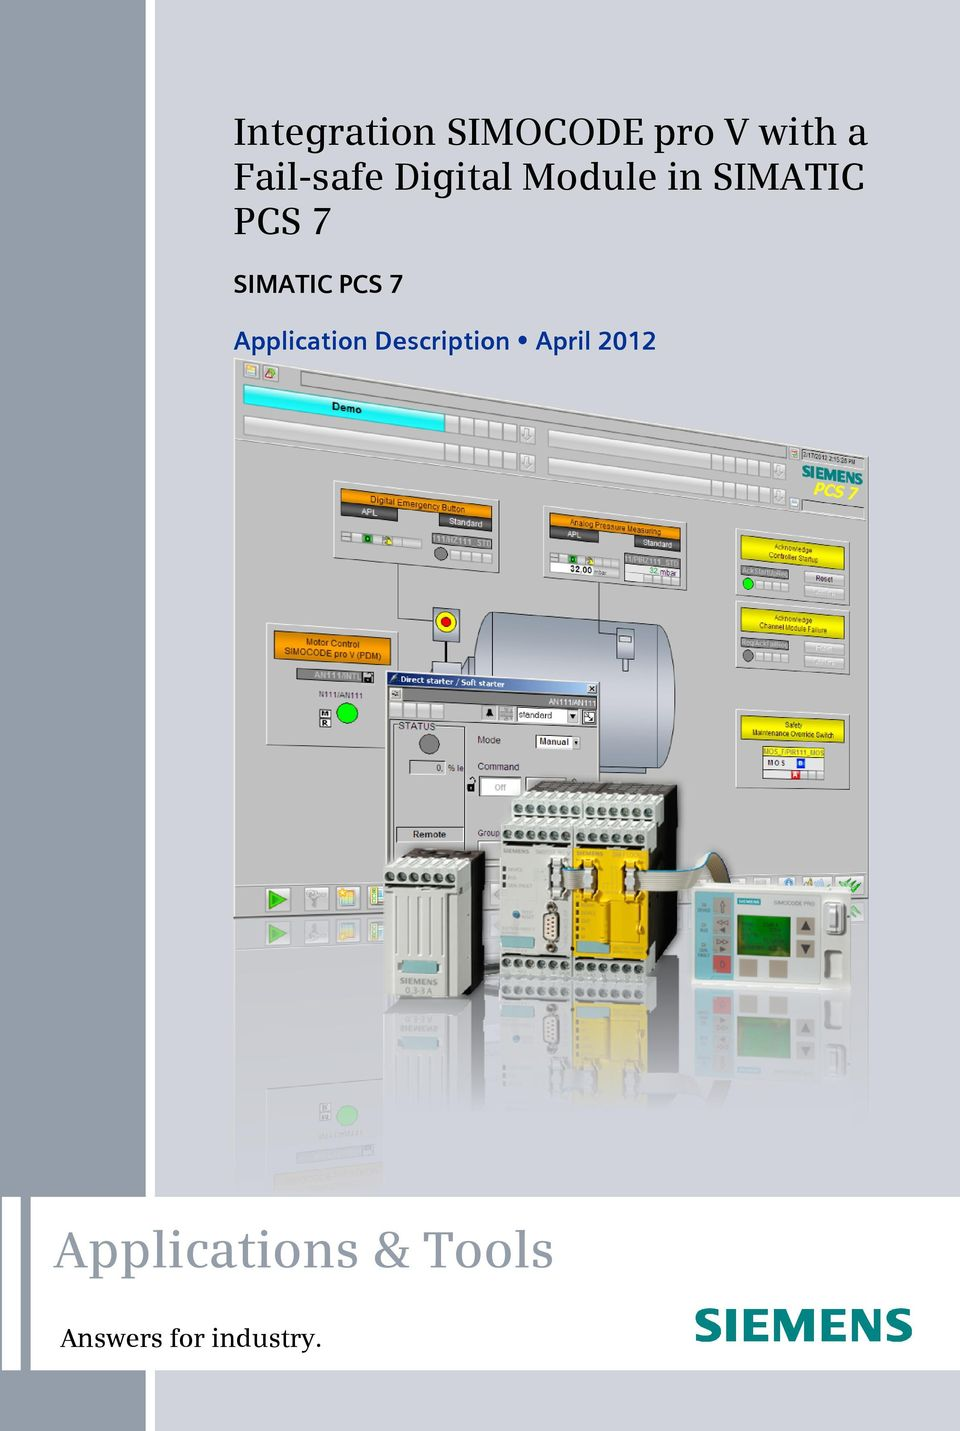 SIMATIC PCS 7 Application Description April